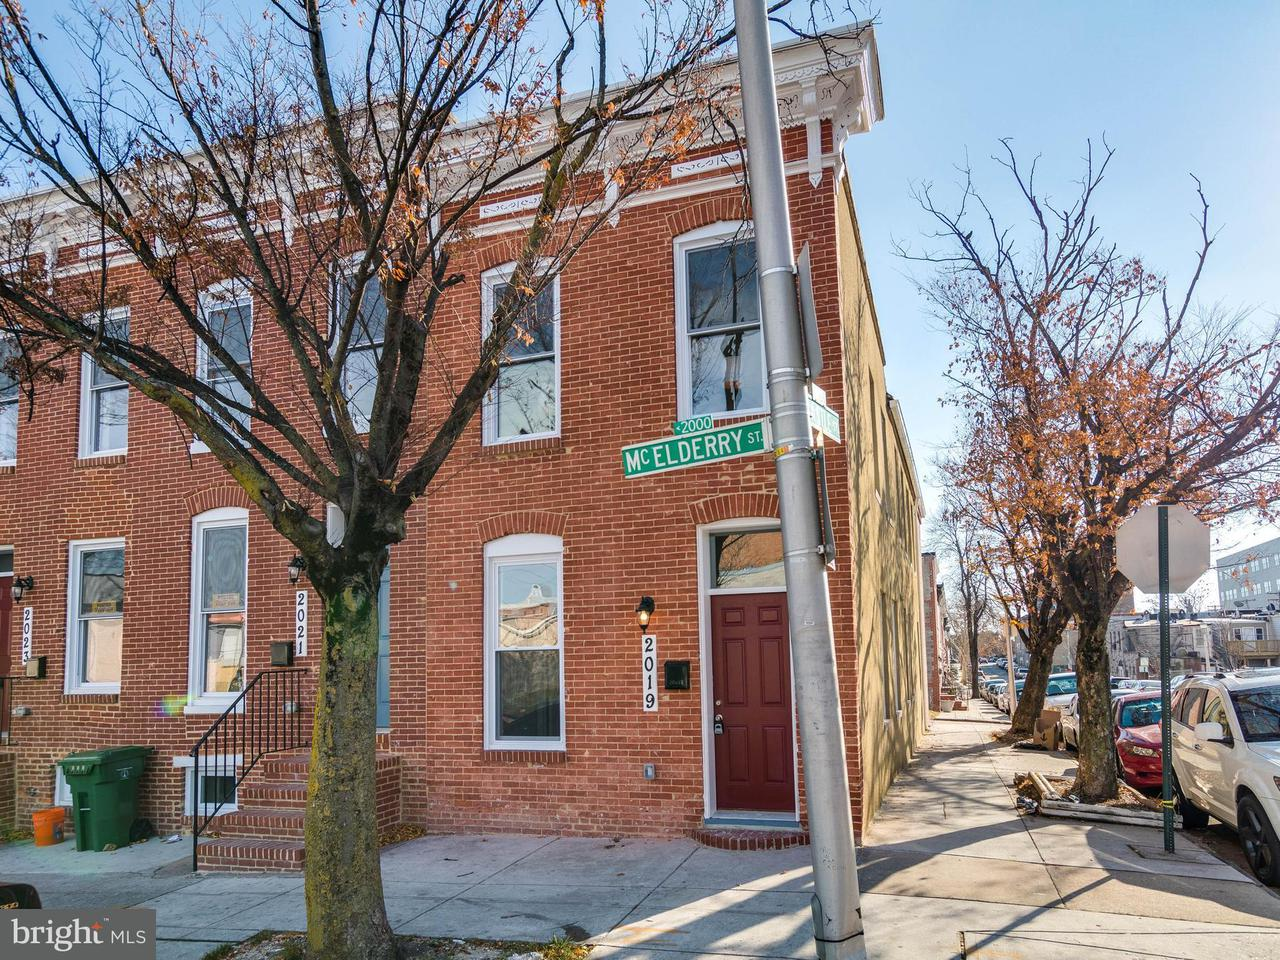 Other Residential for Rent at 2019 Mcelderry St Baltimore, Maryland 21205 United States